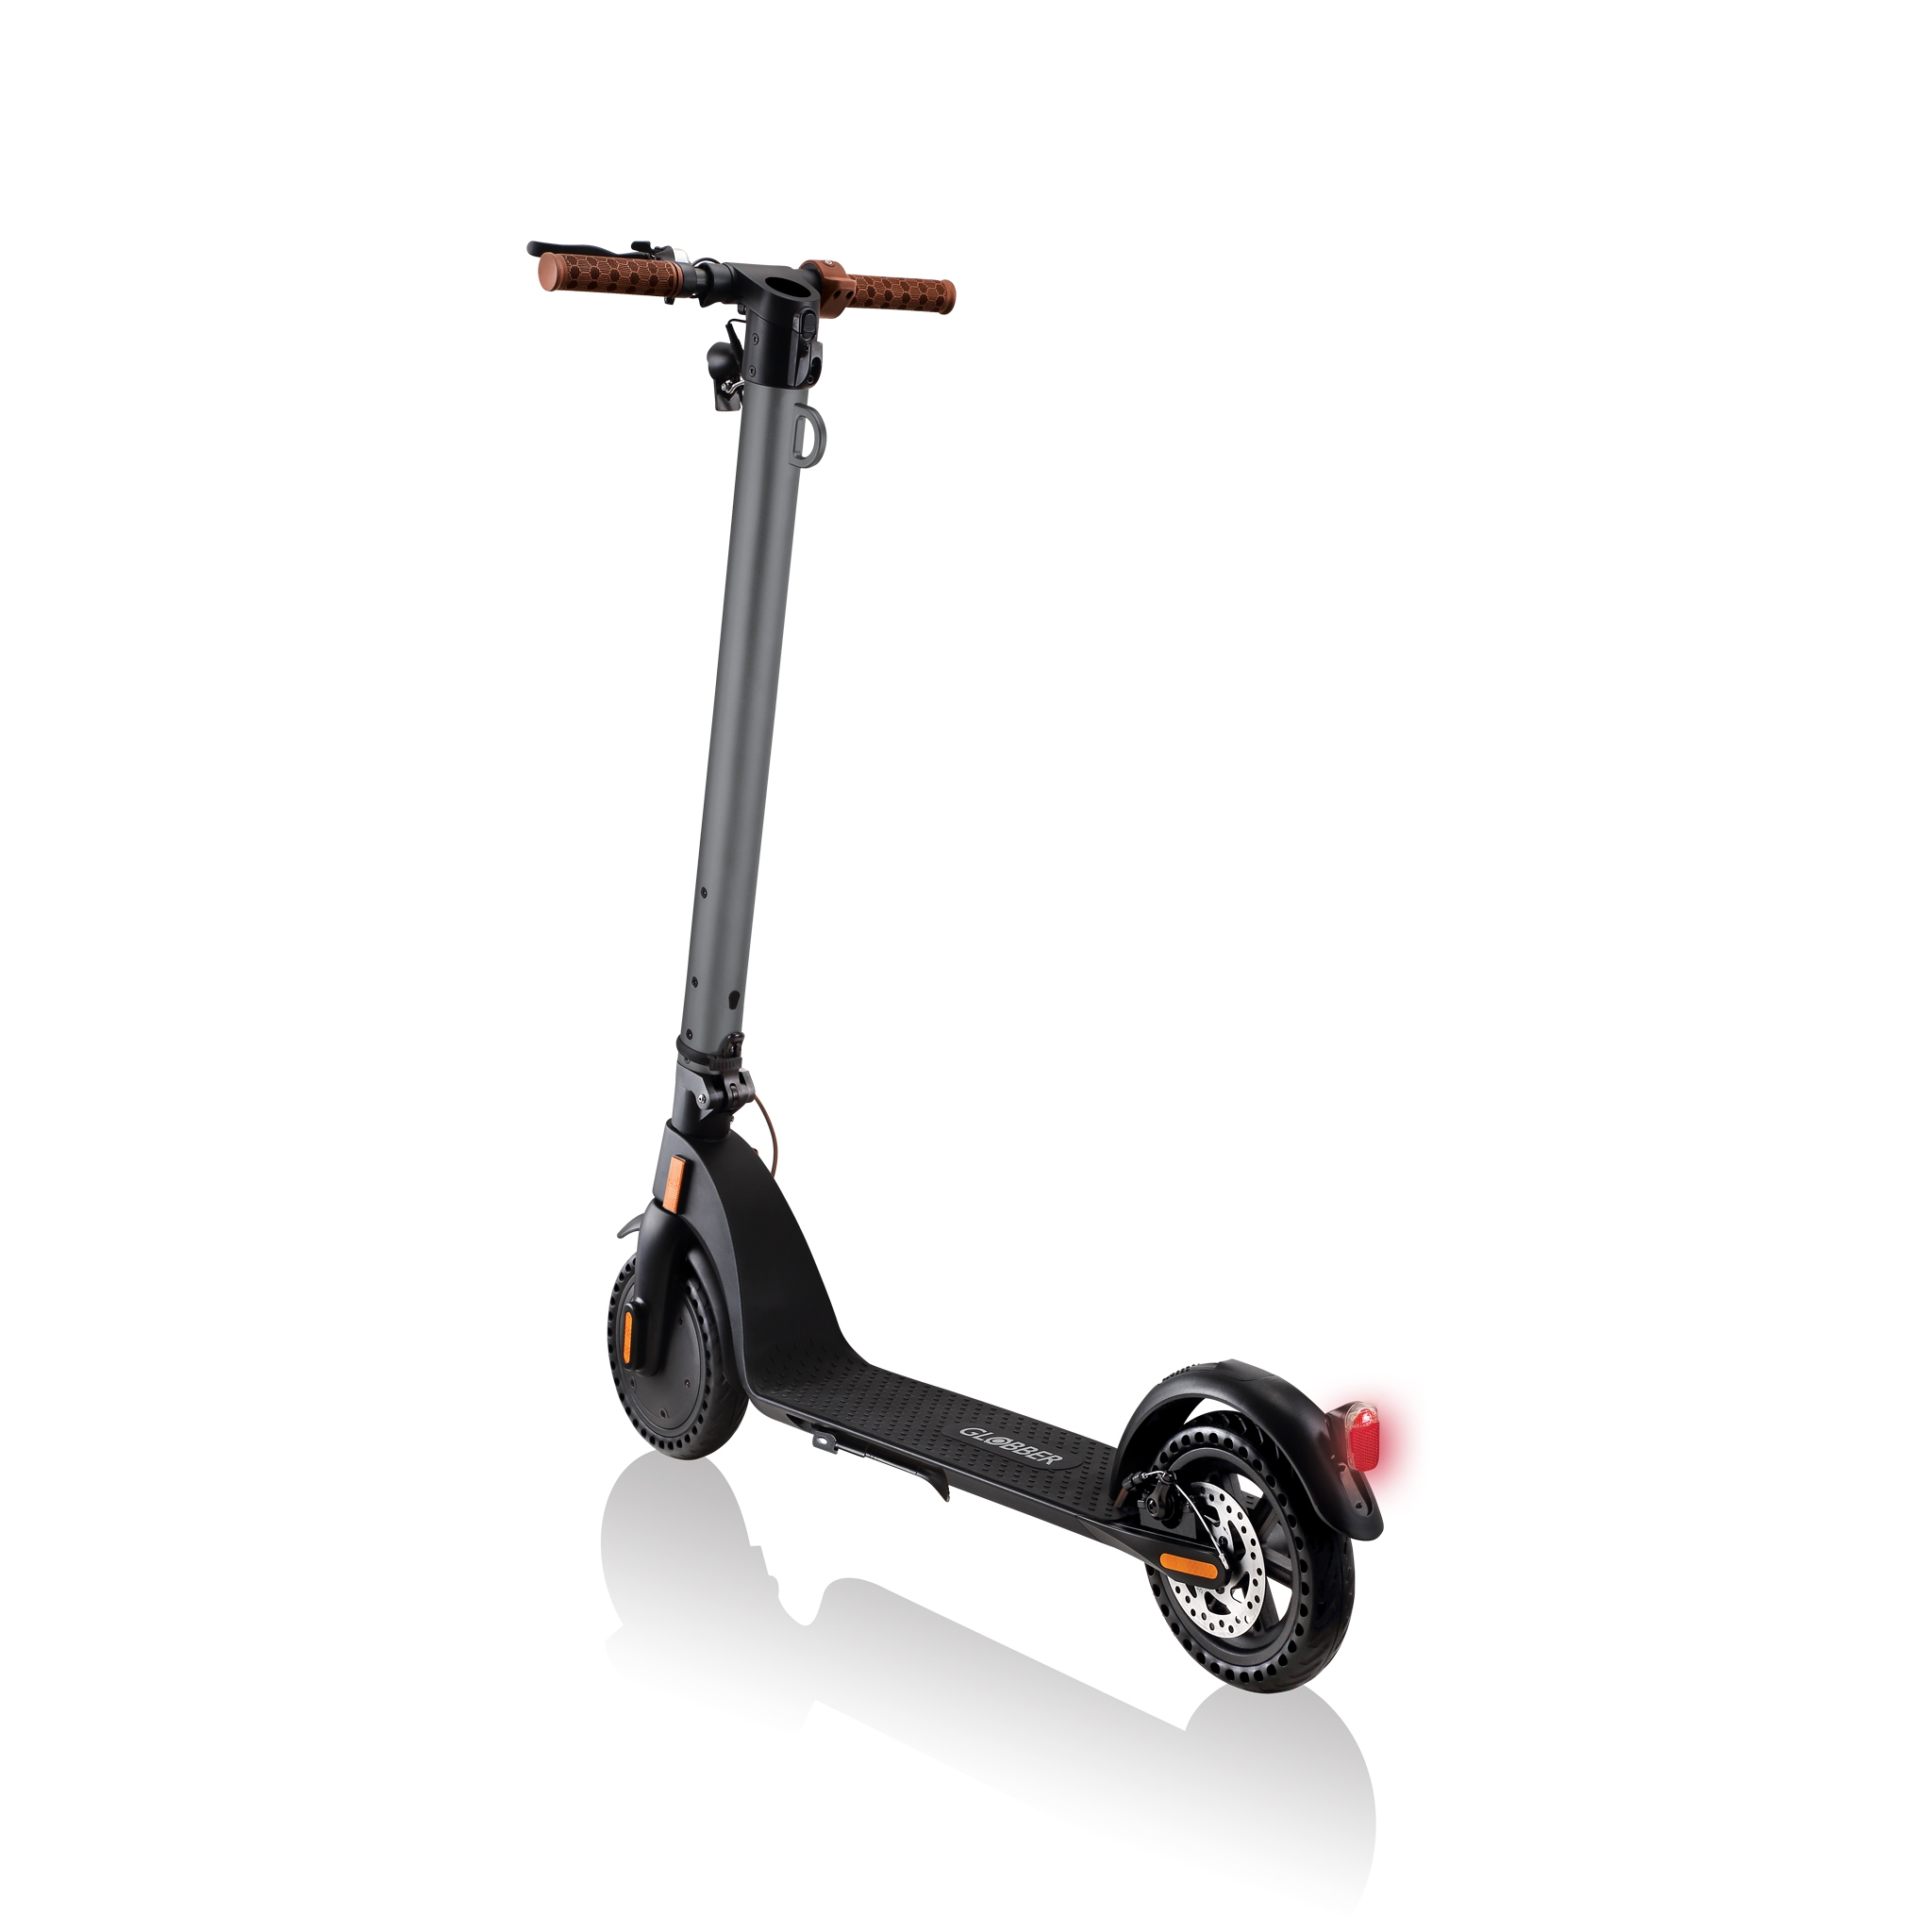 Globber-ONE-K-E-MOTION-23-electric-scooter-for-teens-and-adults-with-dual-braking-system 5